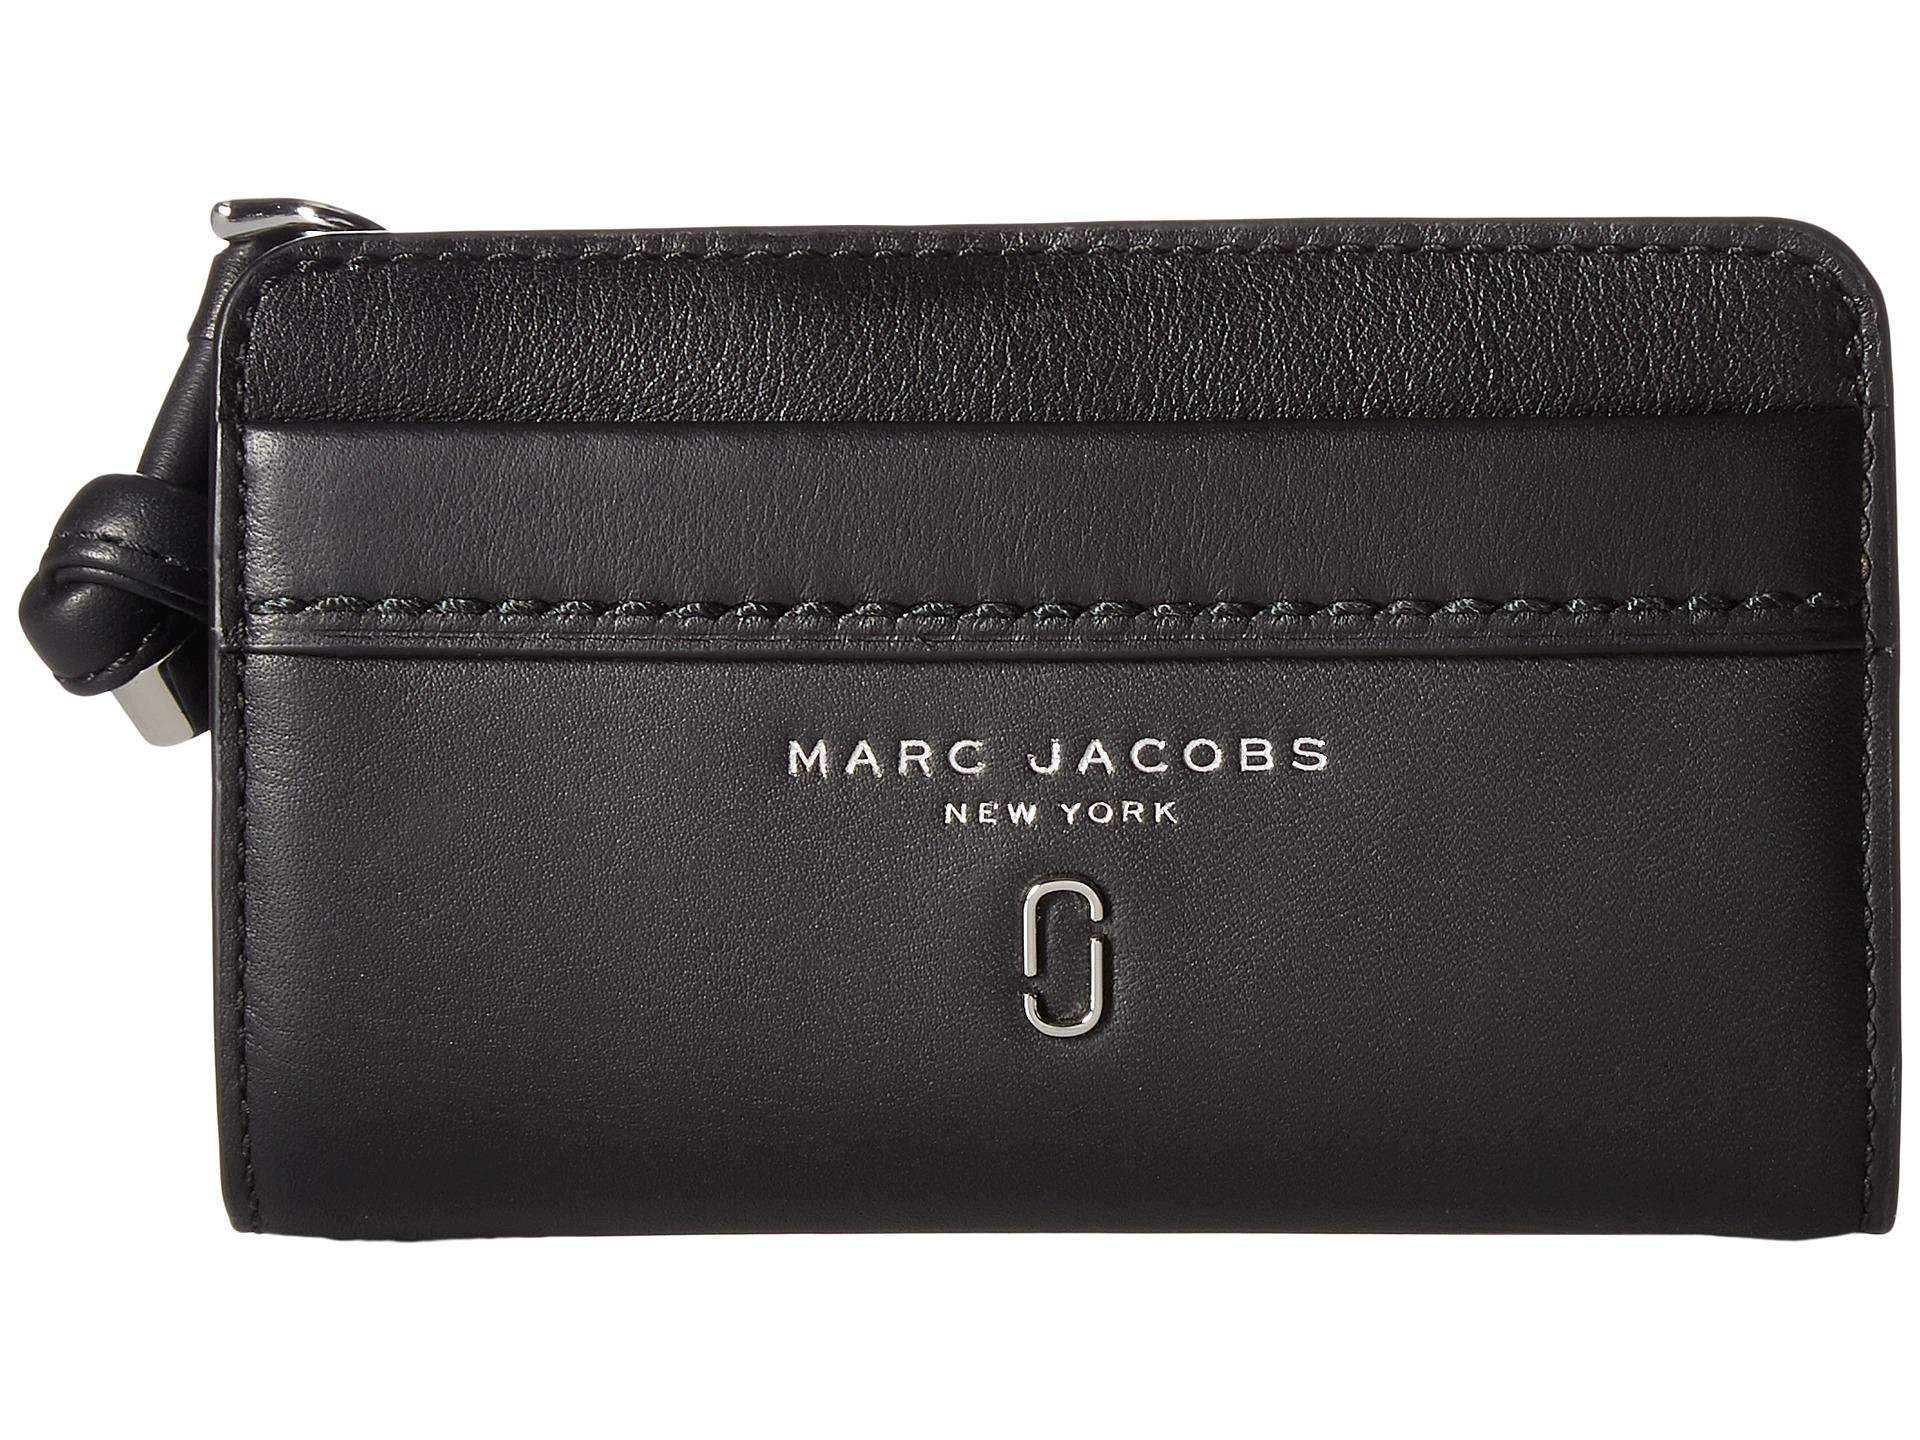 5999695c75 Marc Jacobs Tied Up Compact Wallet in Black - Lyst